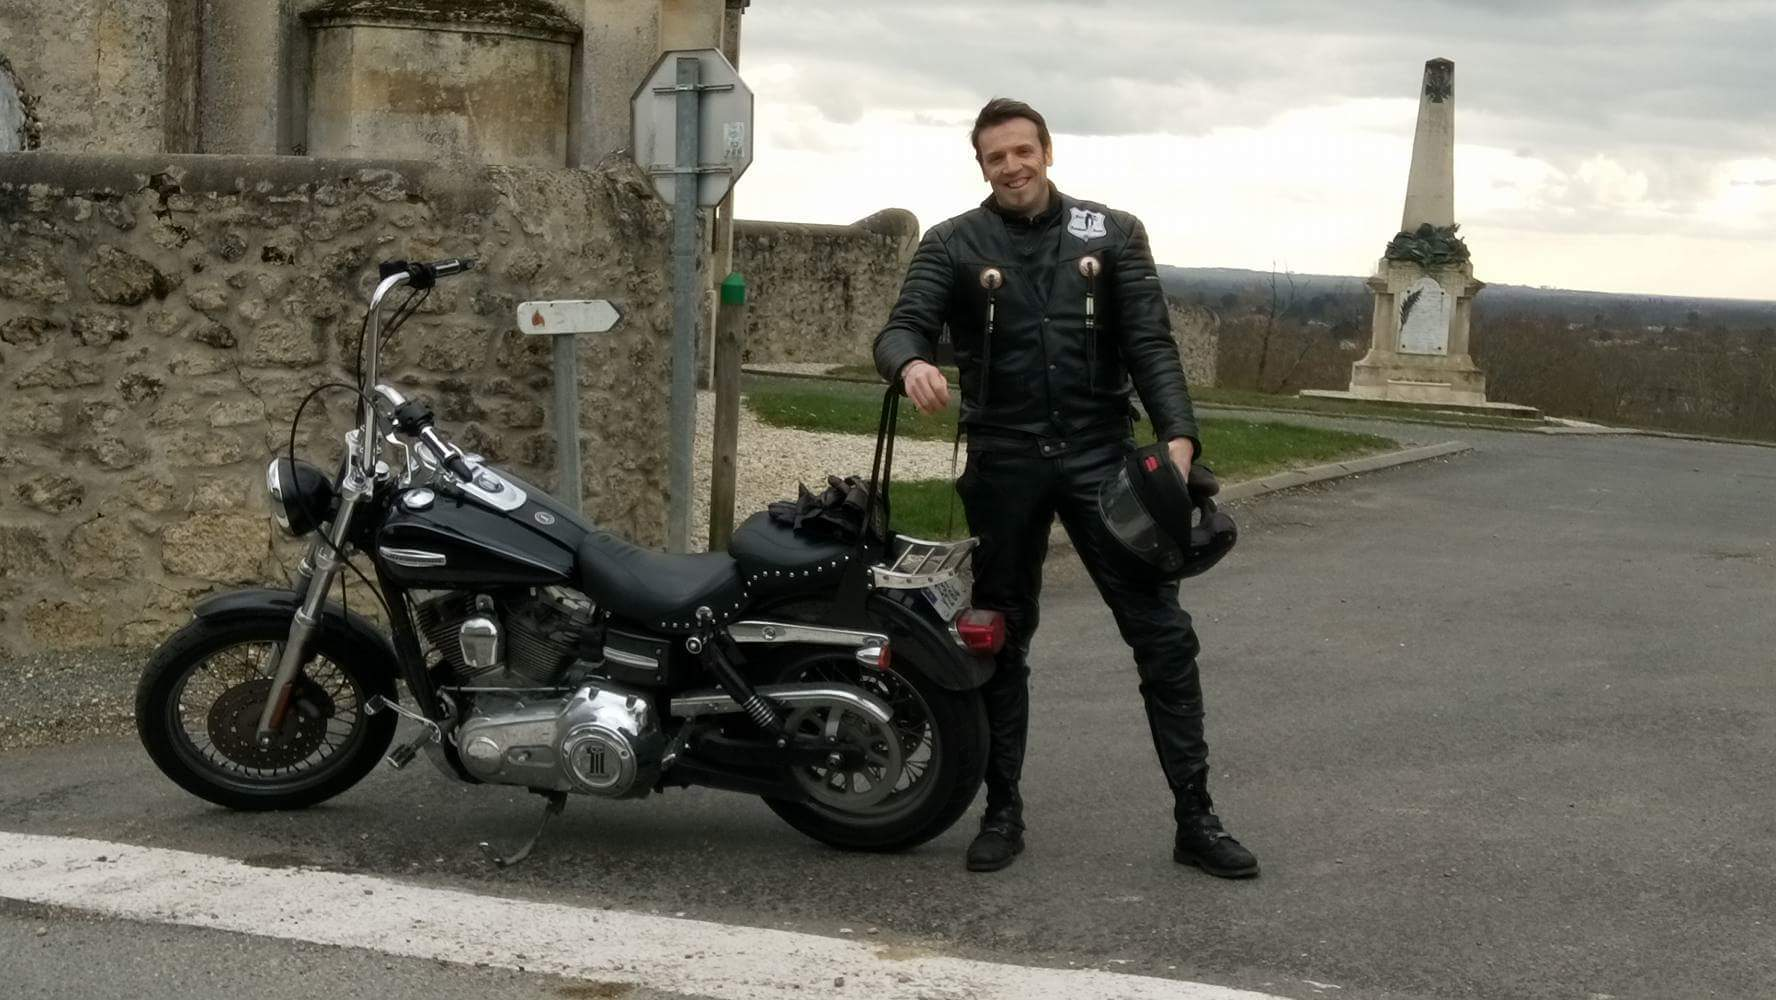 DYNA SUPER GLIDE  combien sommes nous sur Passion-Harley - Page 5 486449received1118850944803940